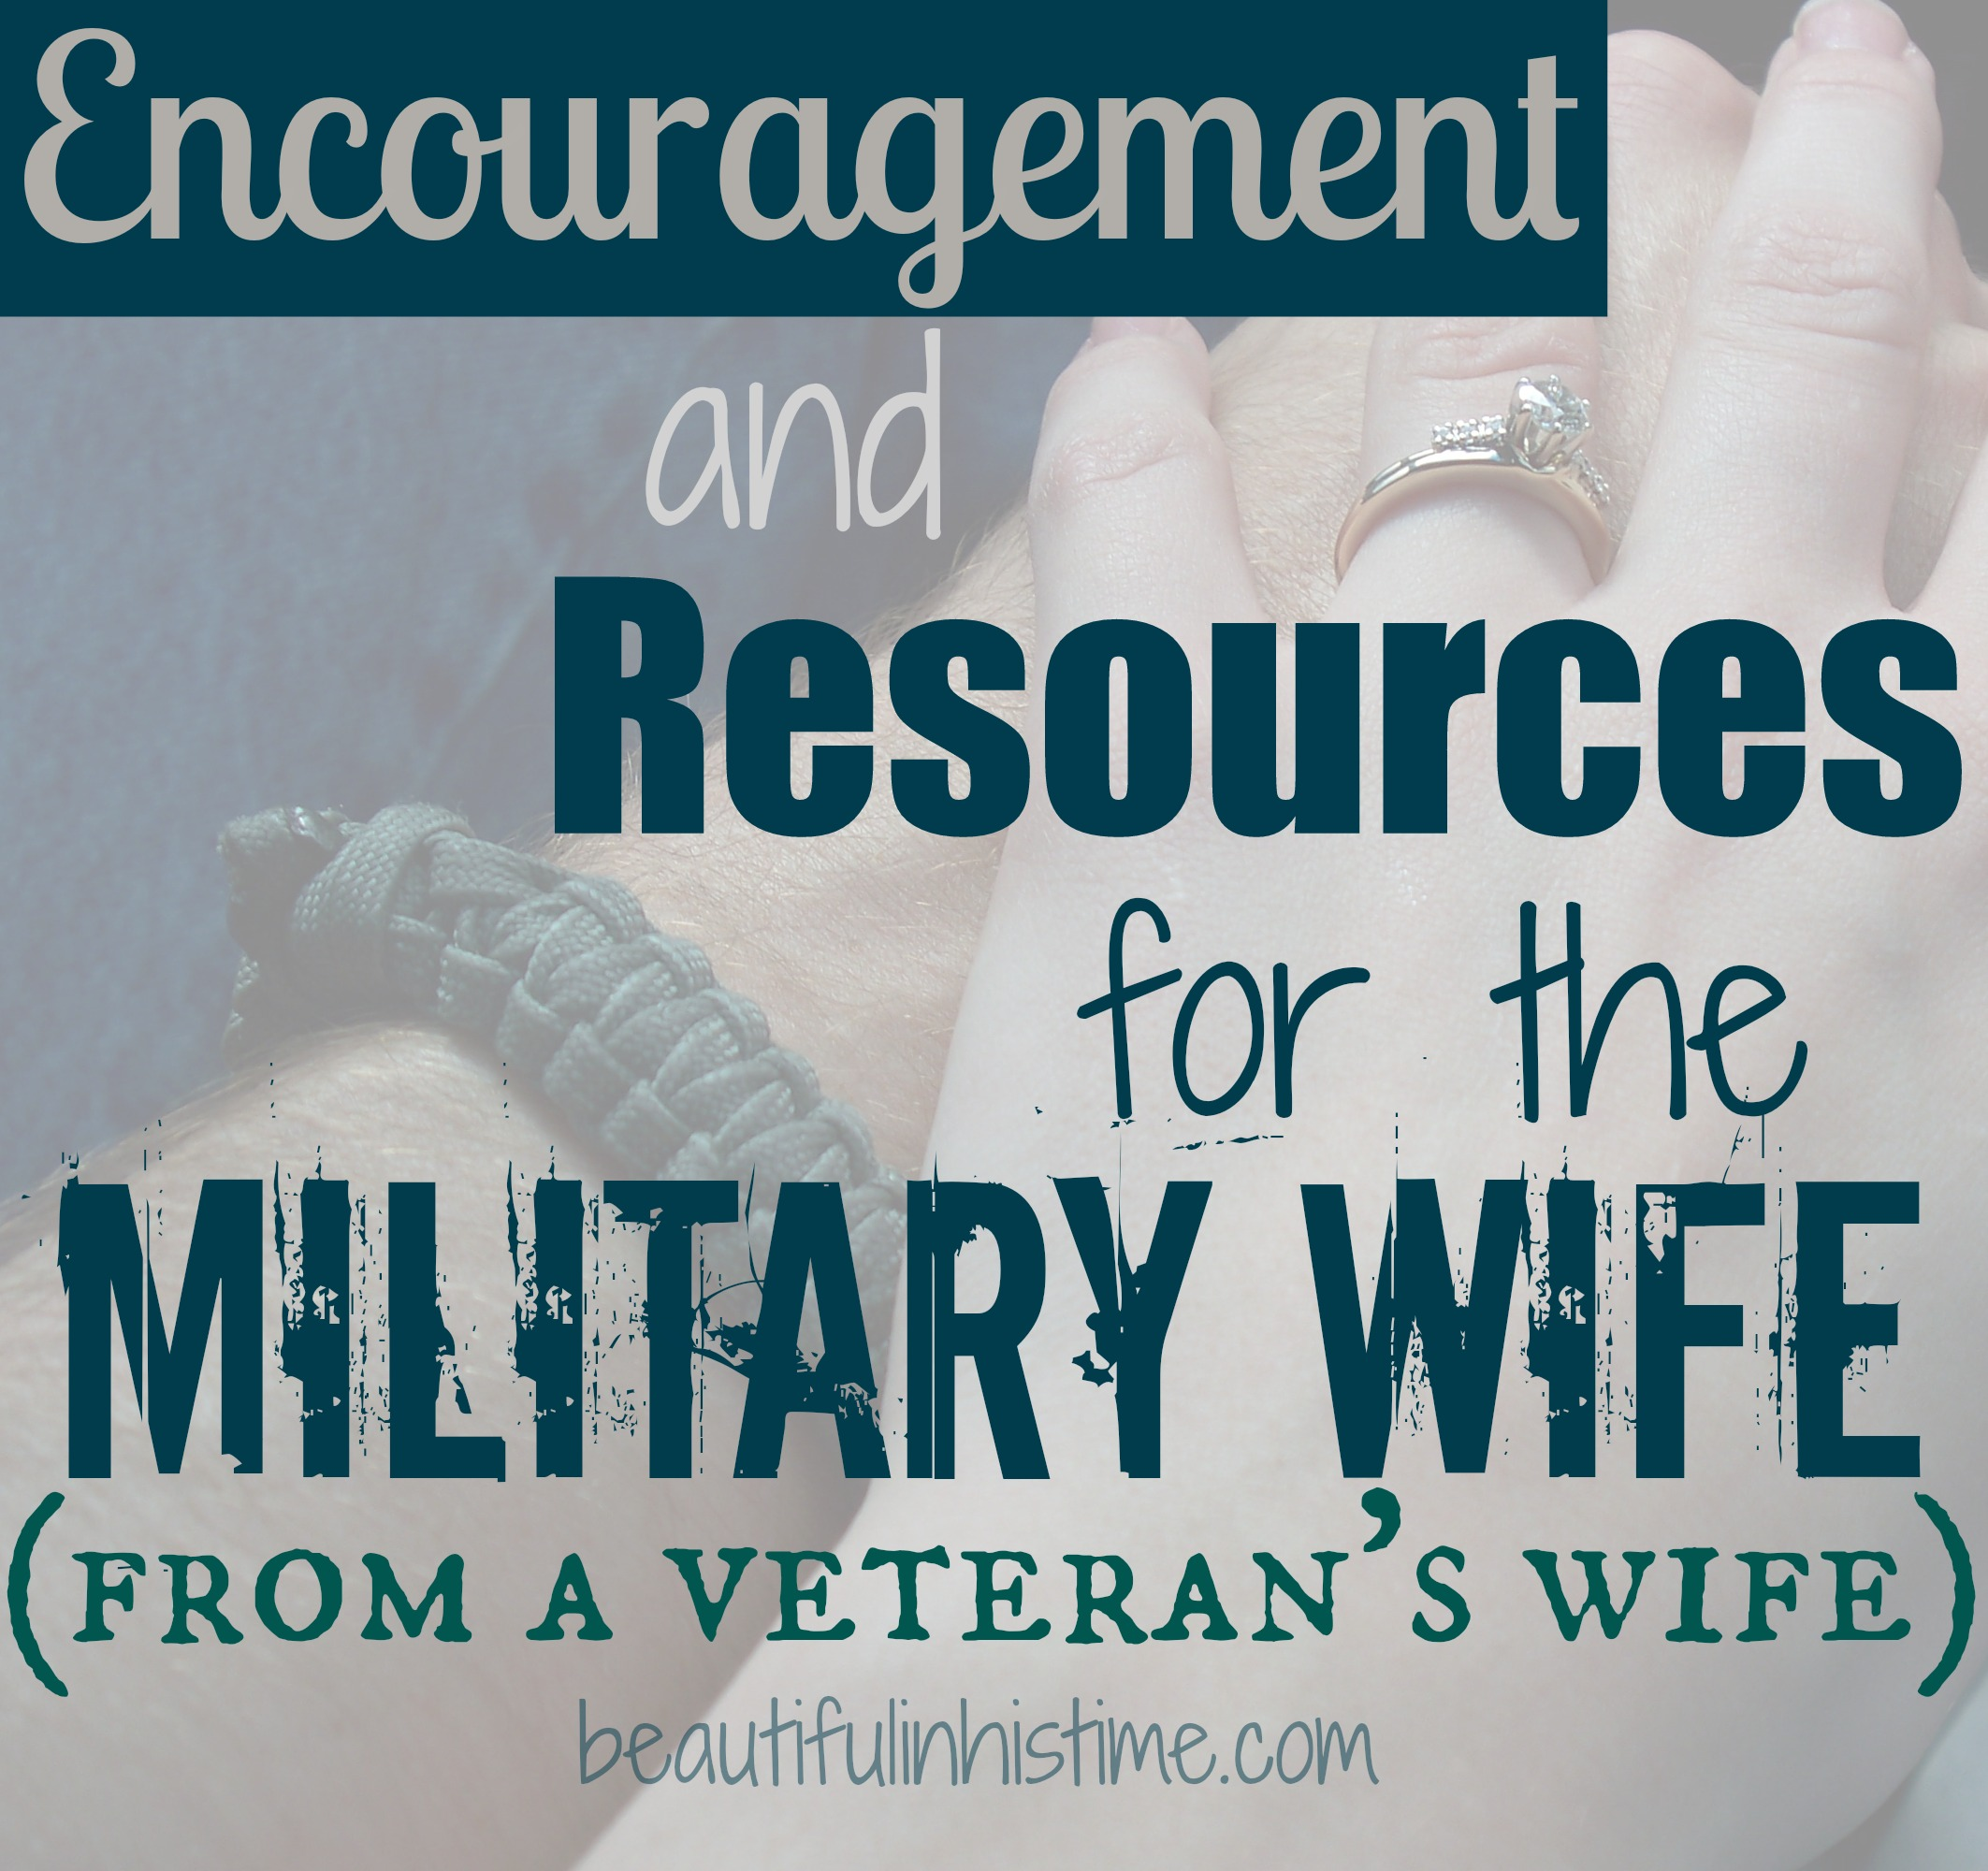 Encouragement and Resources for the Military Wife (From a Veteran's Wife) #veteransday #military #army #deployment #encouragement